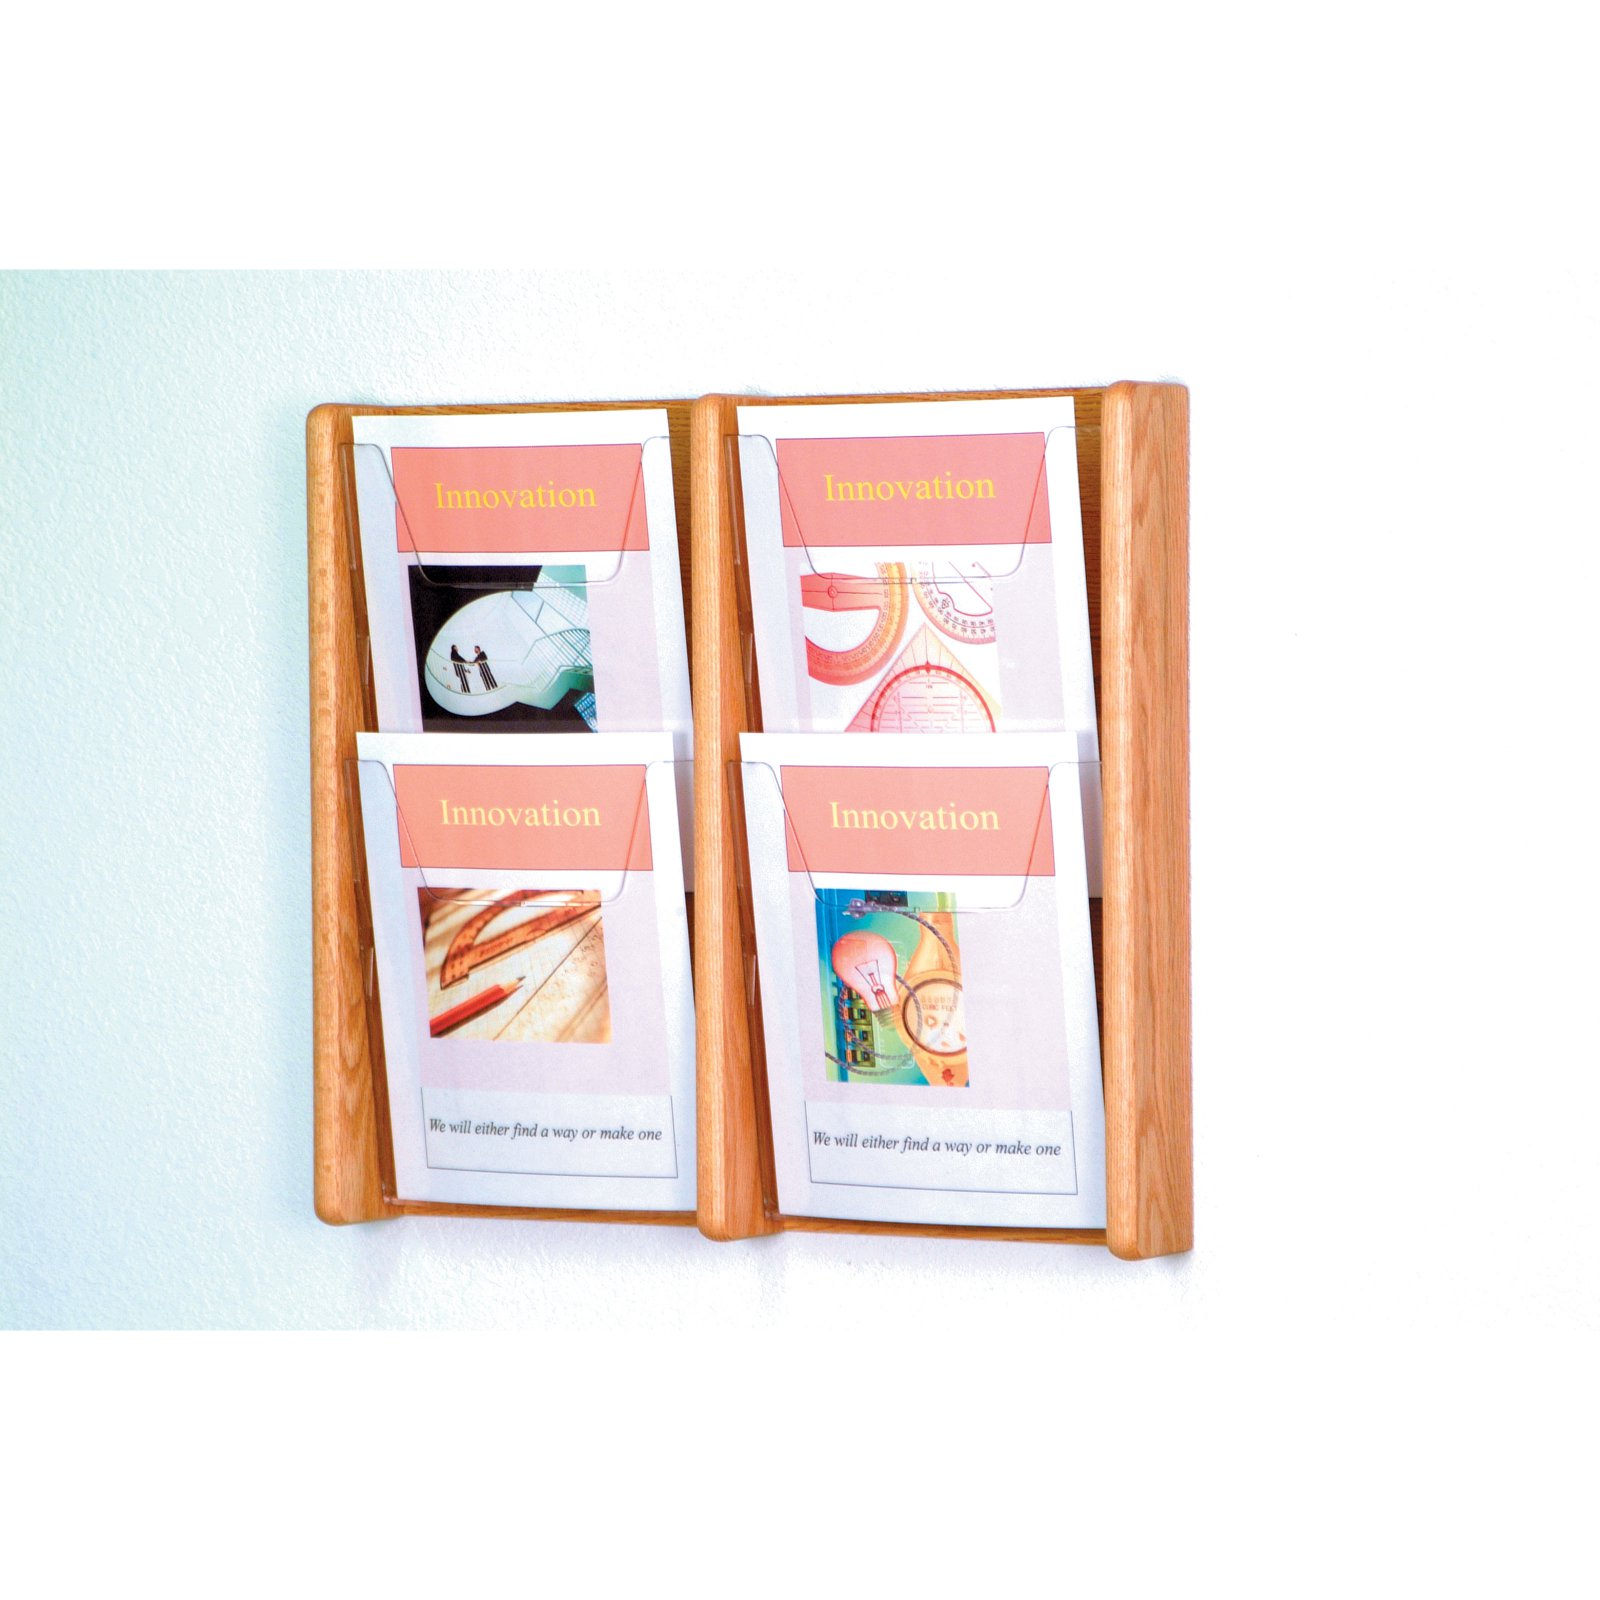 4-Pocket Solid Wood Wall Magazine Rack by Wooden Mallet